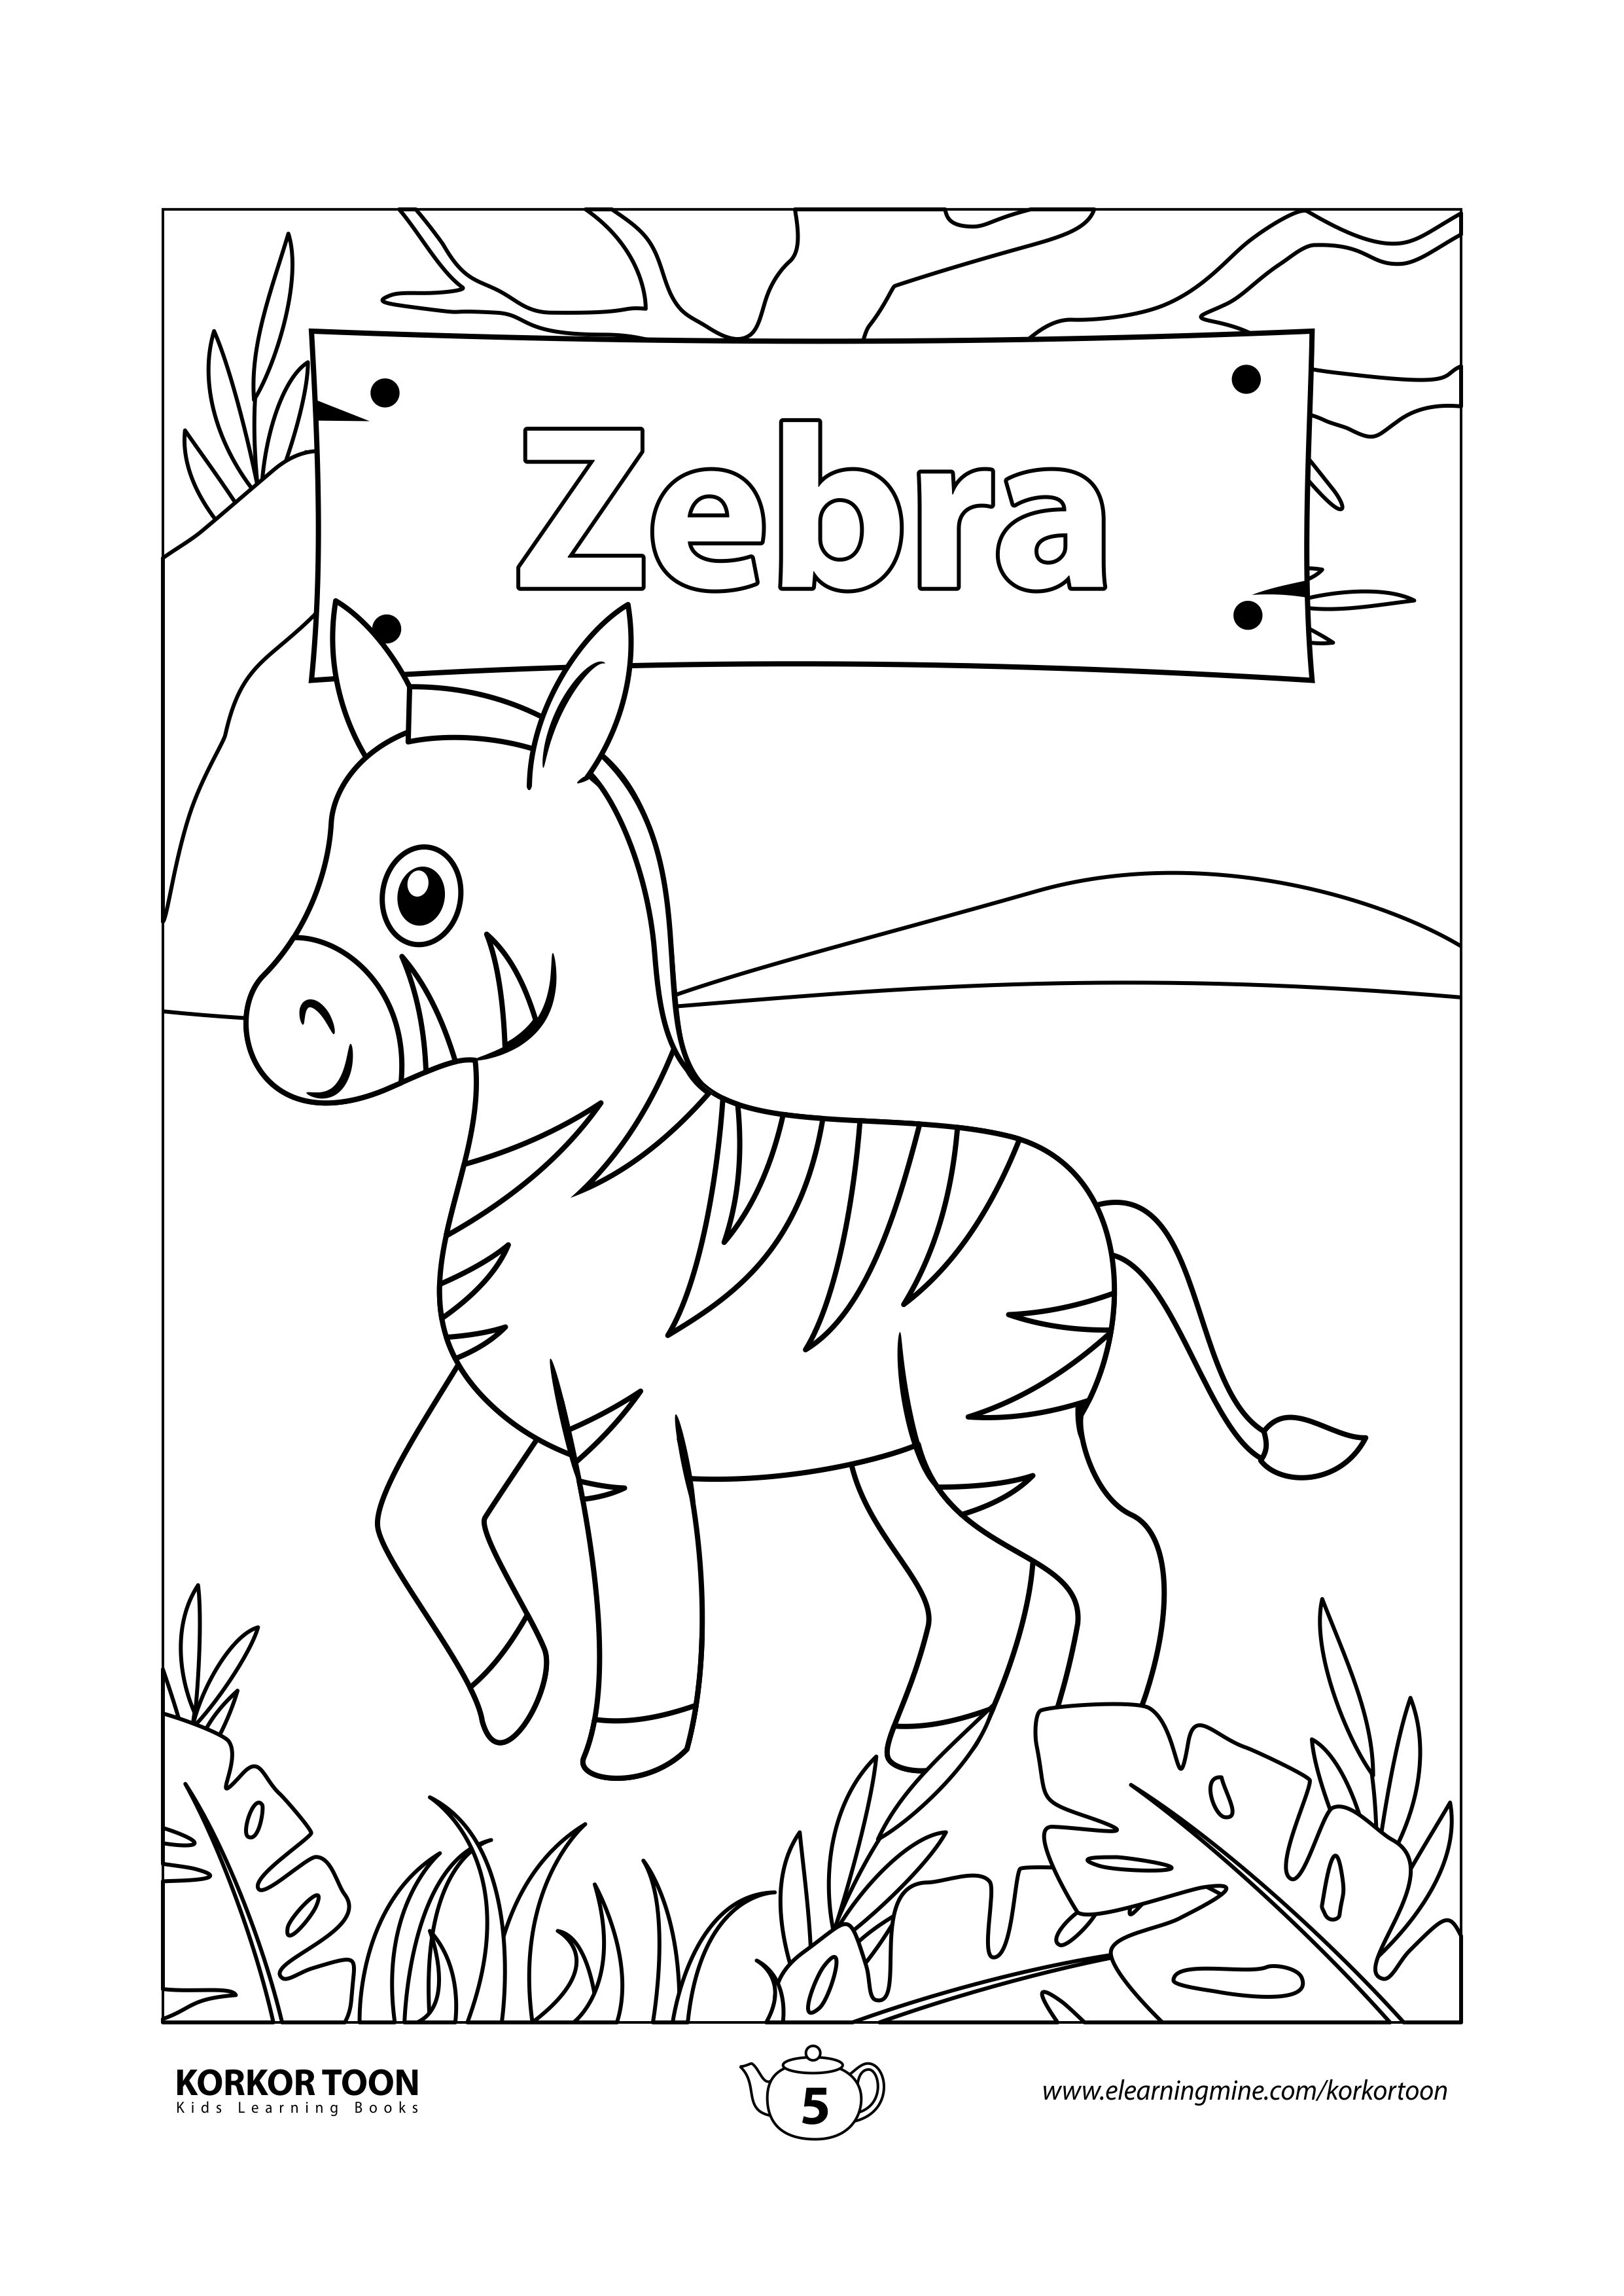 Jungle Animals Coloring Book For Kids Zebra Coloring Page In 2021 Zebra Coloring Pages Coloring Books Animal Coloring Books